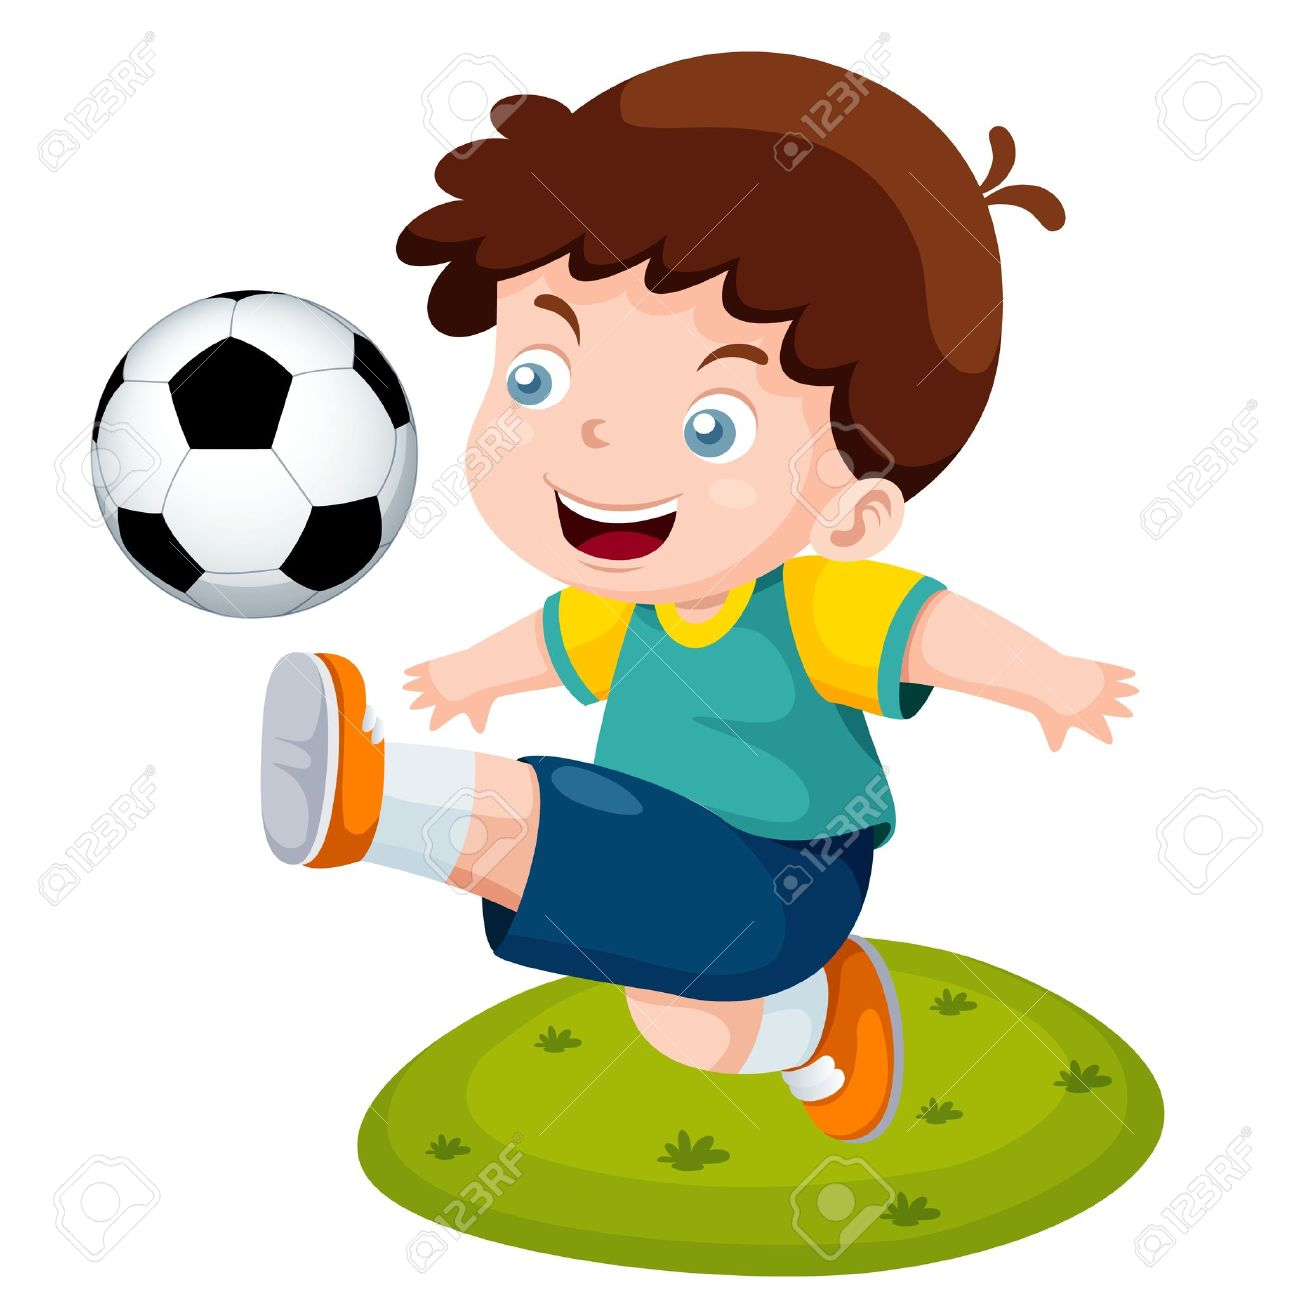 illustration of cartoon boy playing soccer stock vector 16499582